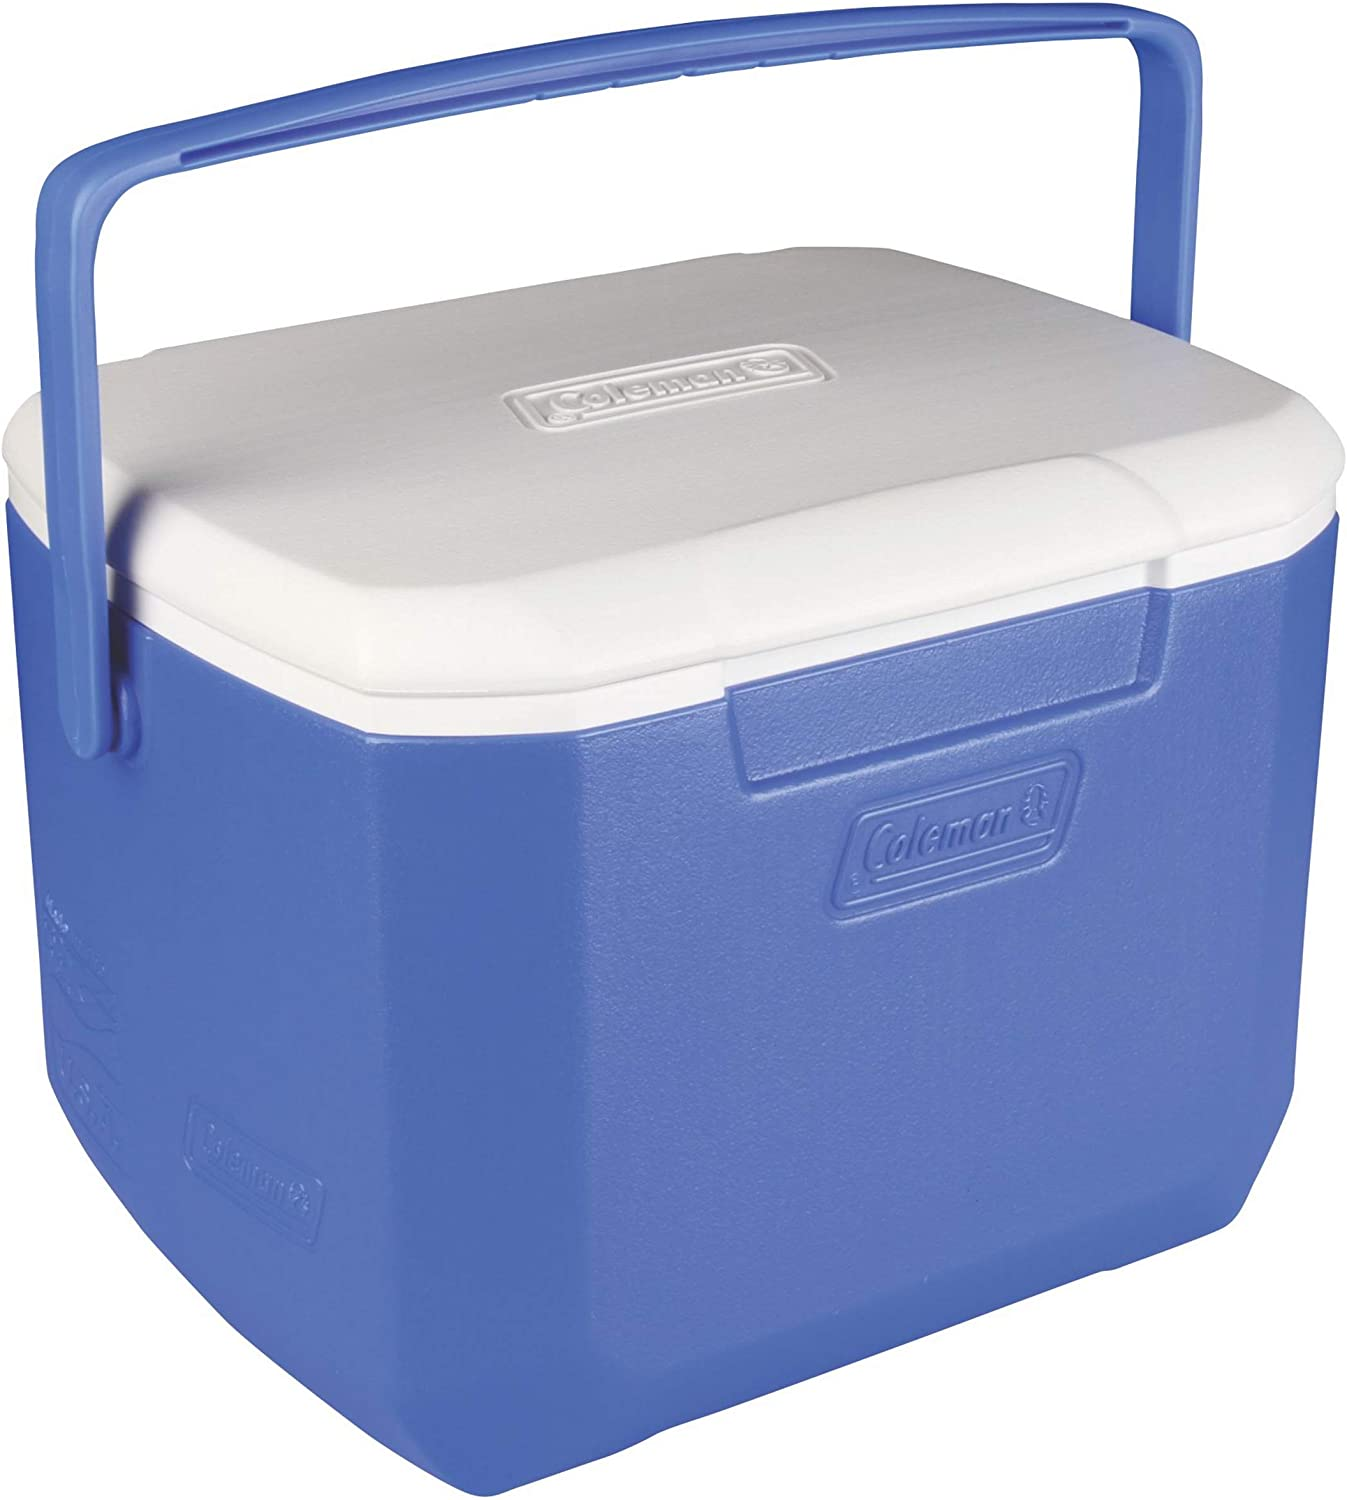 Coleman Cooler| 16-Quart Portable Cooler |EZ-Clean Excursion Cooler Ideal for Picnics and Barbecues